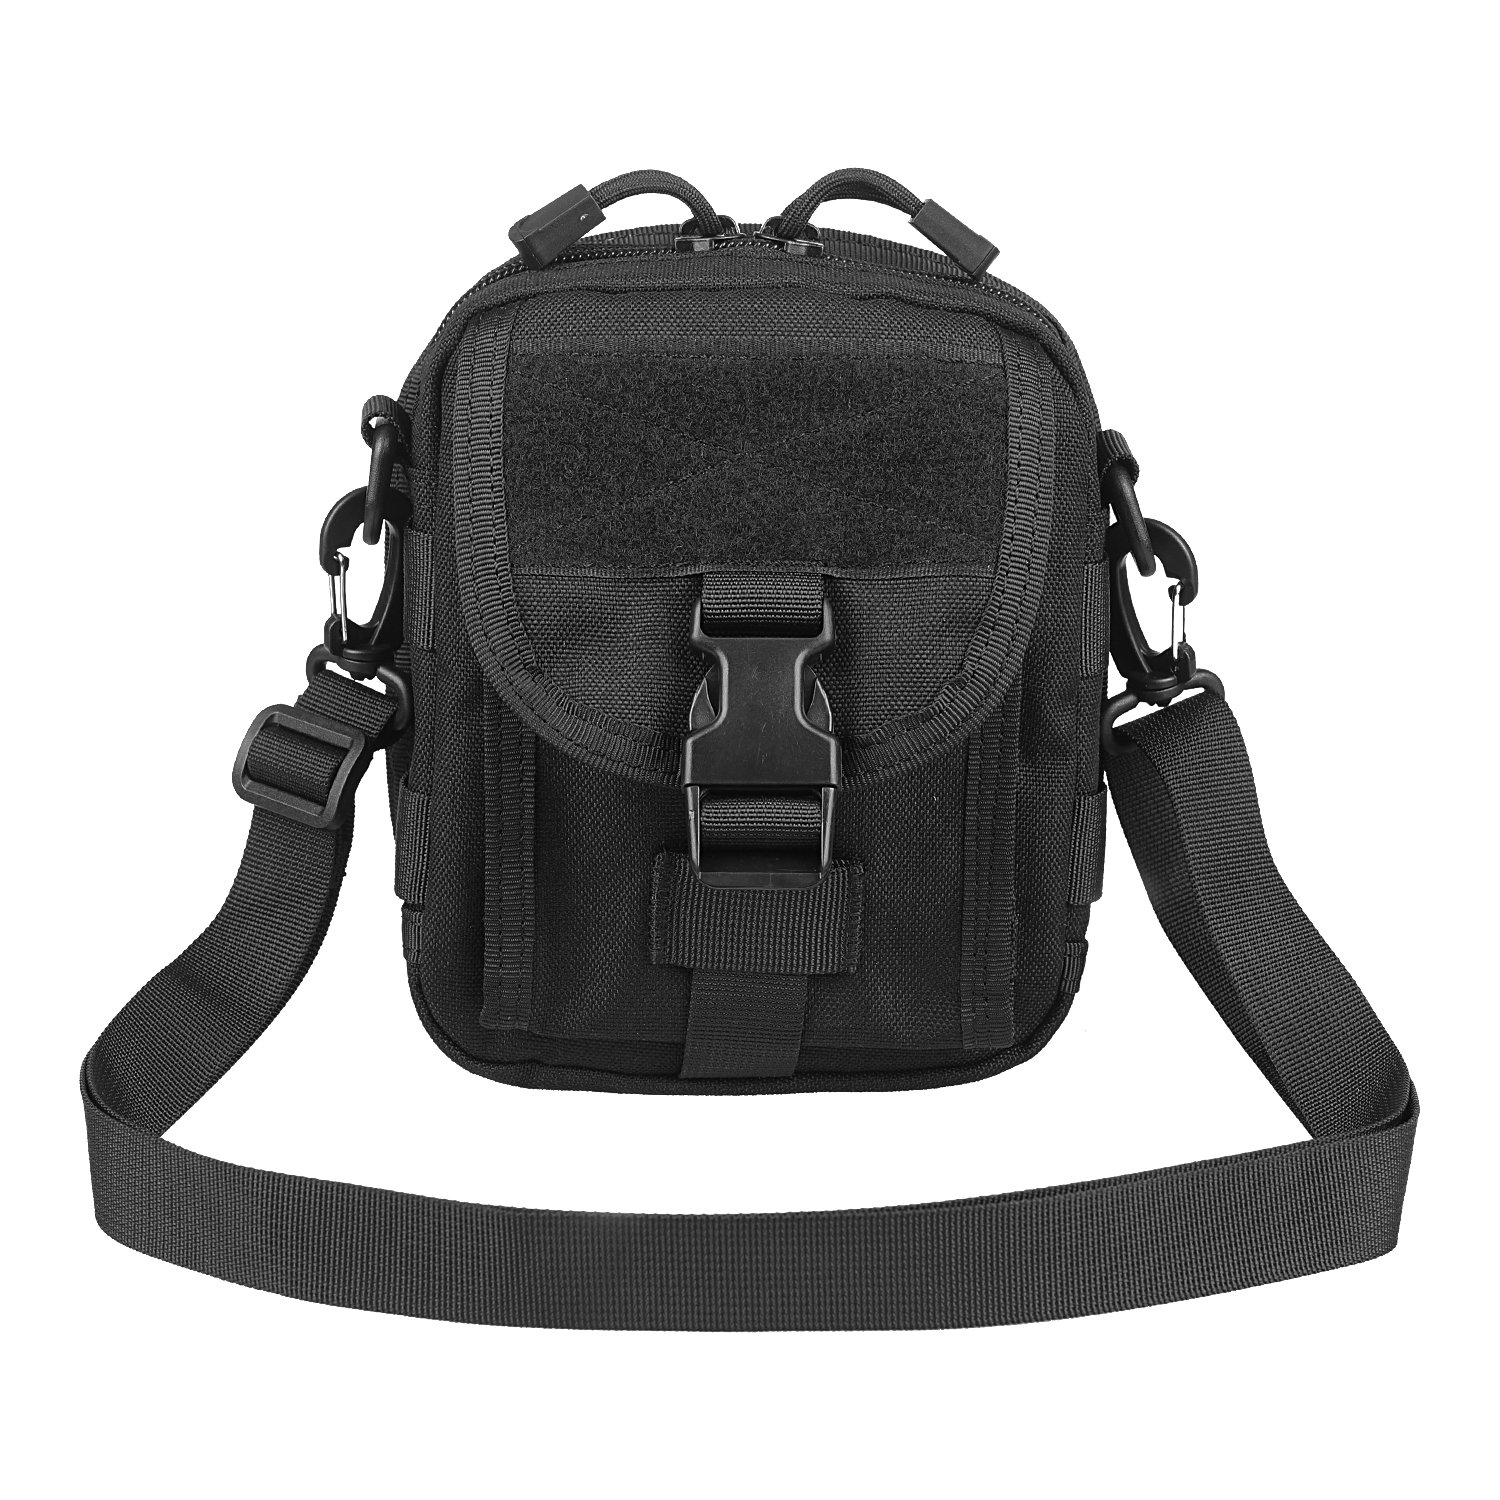 XTACER Multi-Purpose Shoulder Bag Tactical Pouch Modular MOLLE Small Utility EDC Waist Bag with Shoulder Strap (Black)